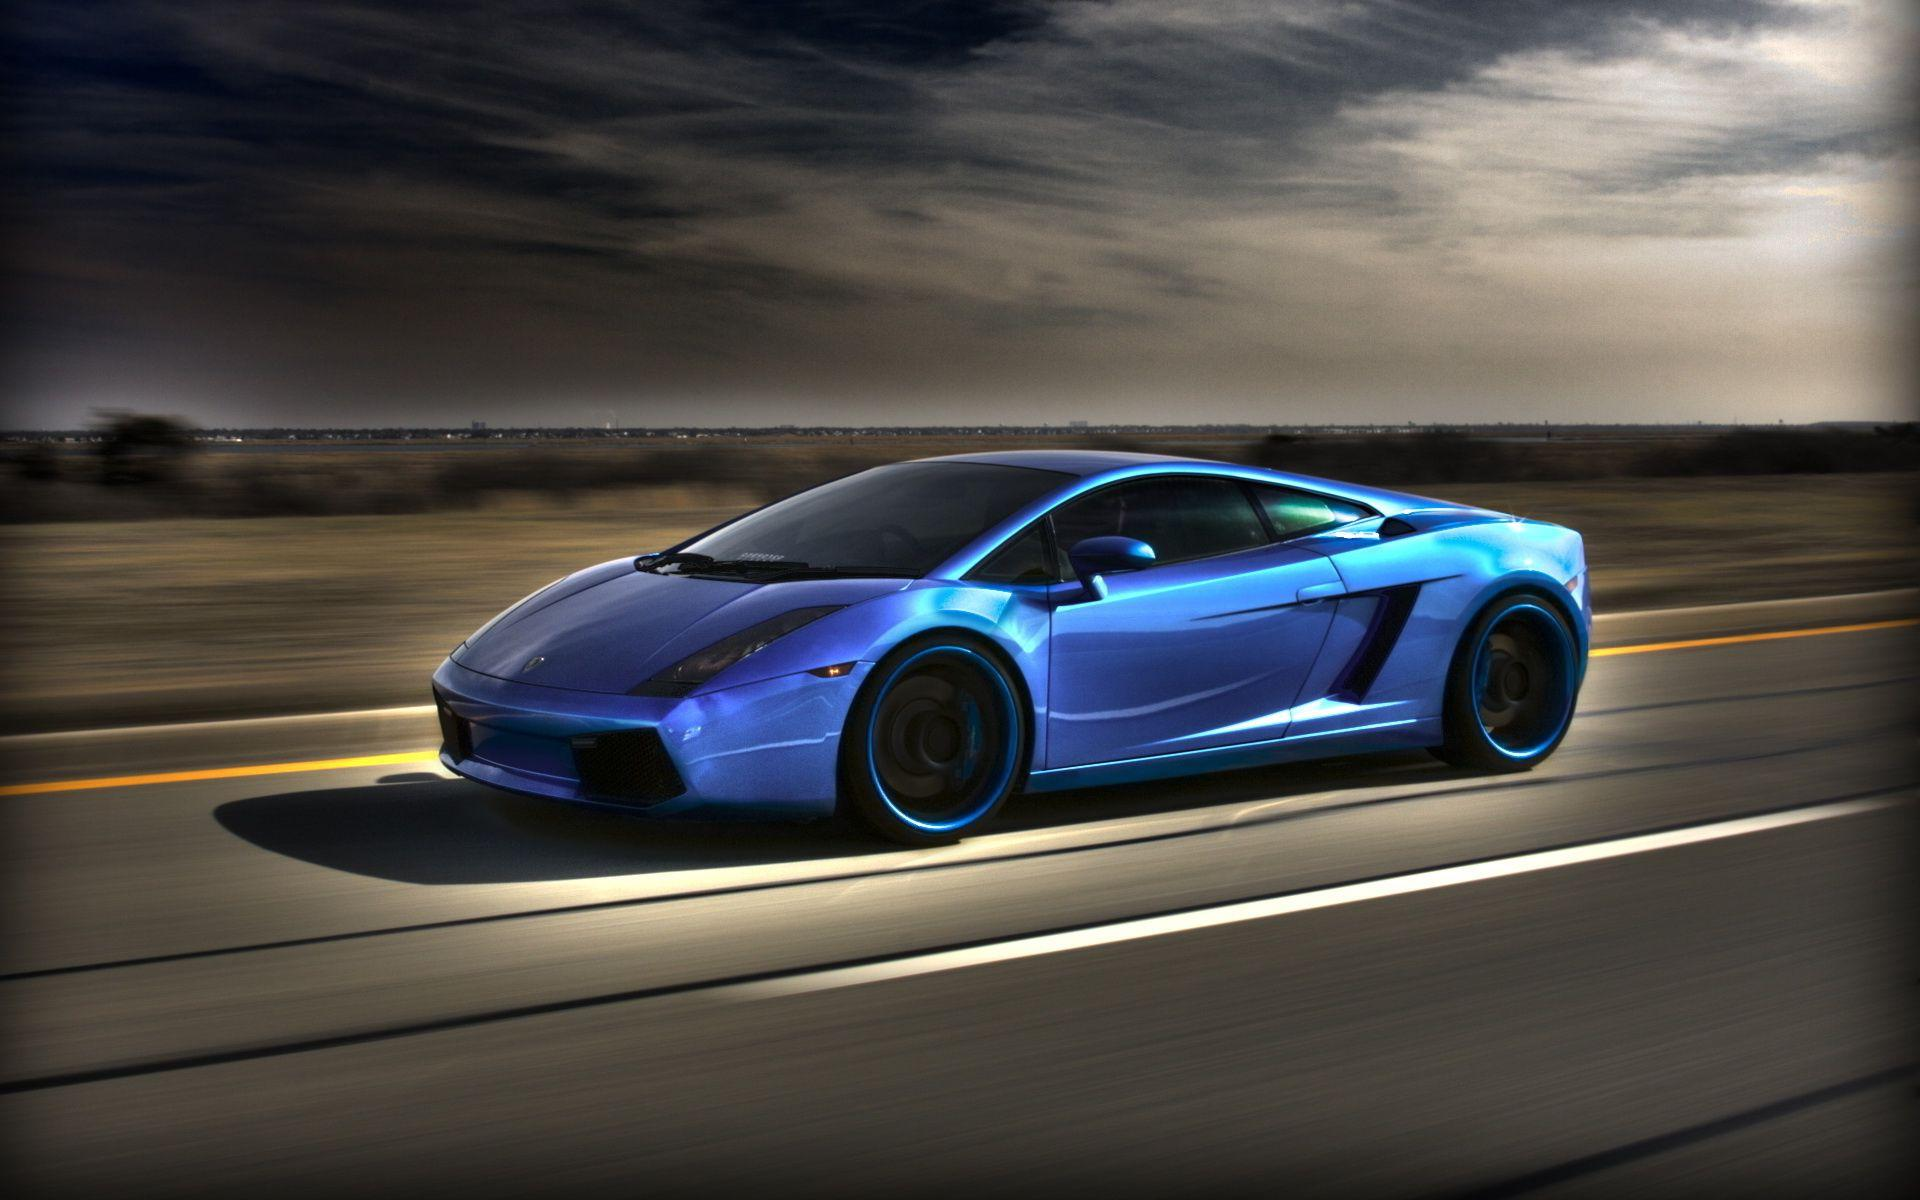 Blue Lamborghinis Wallpapers Wallpaper Cave